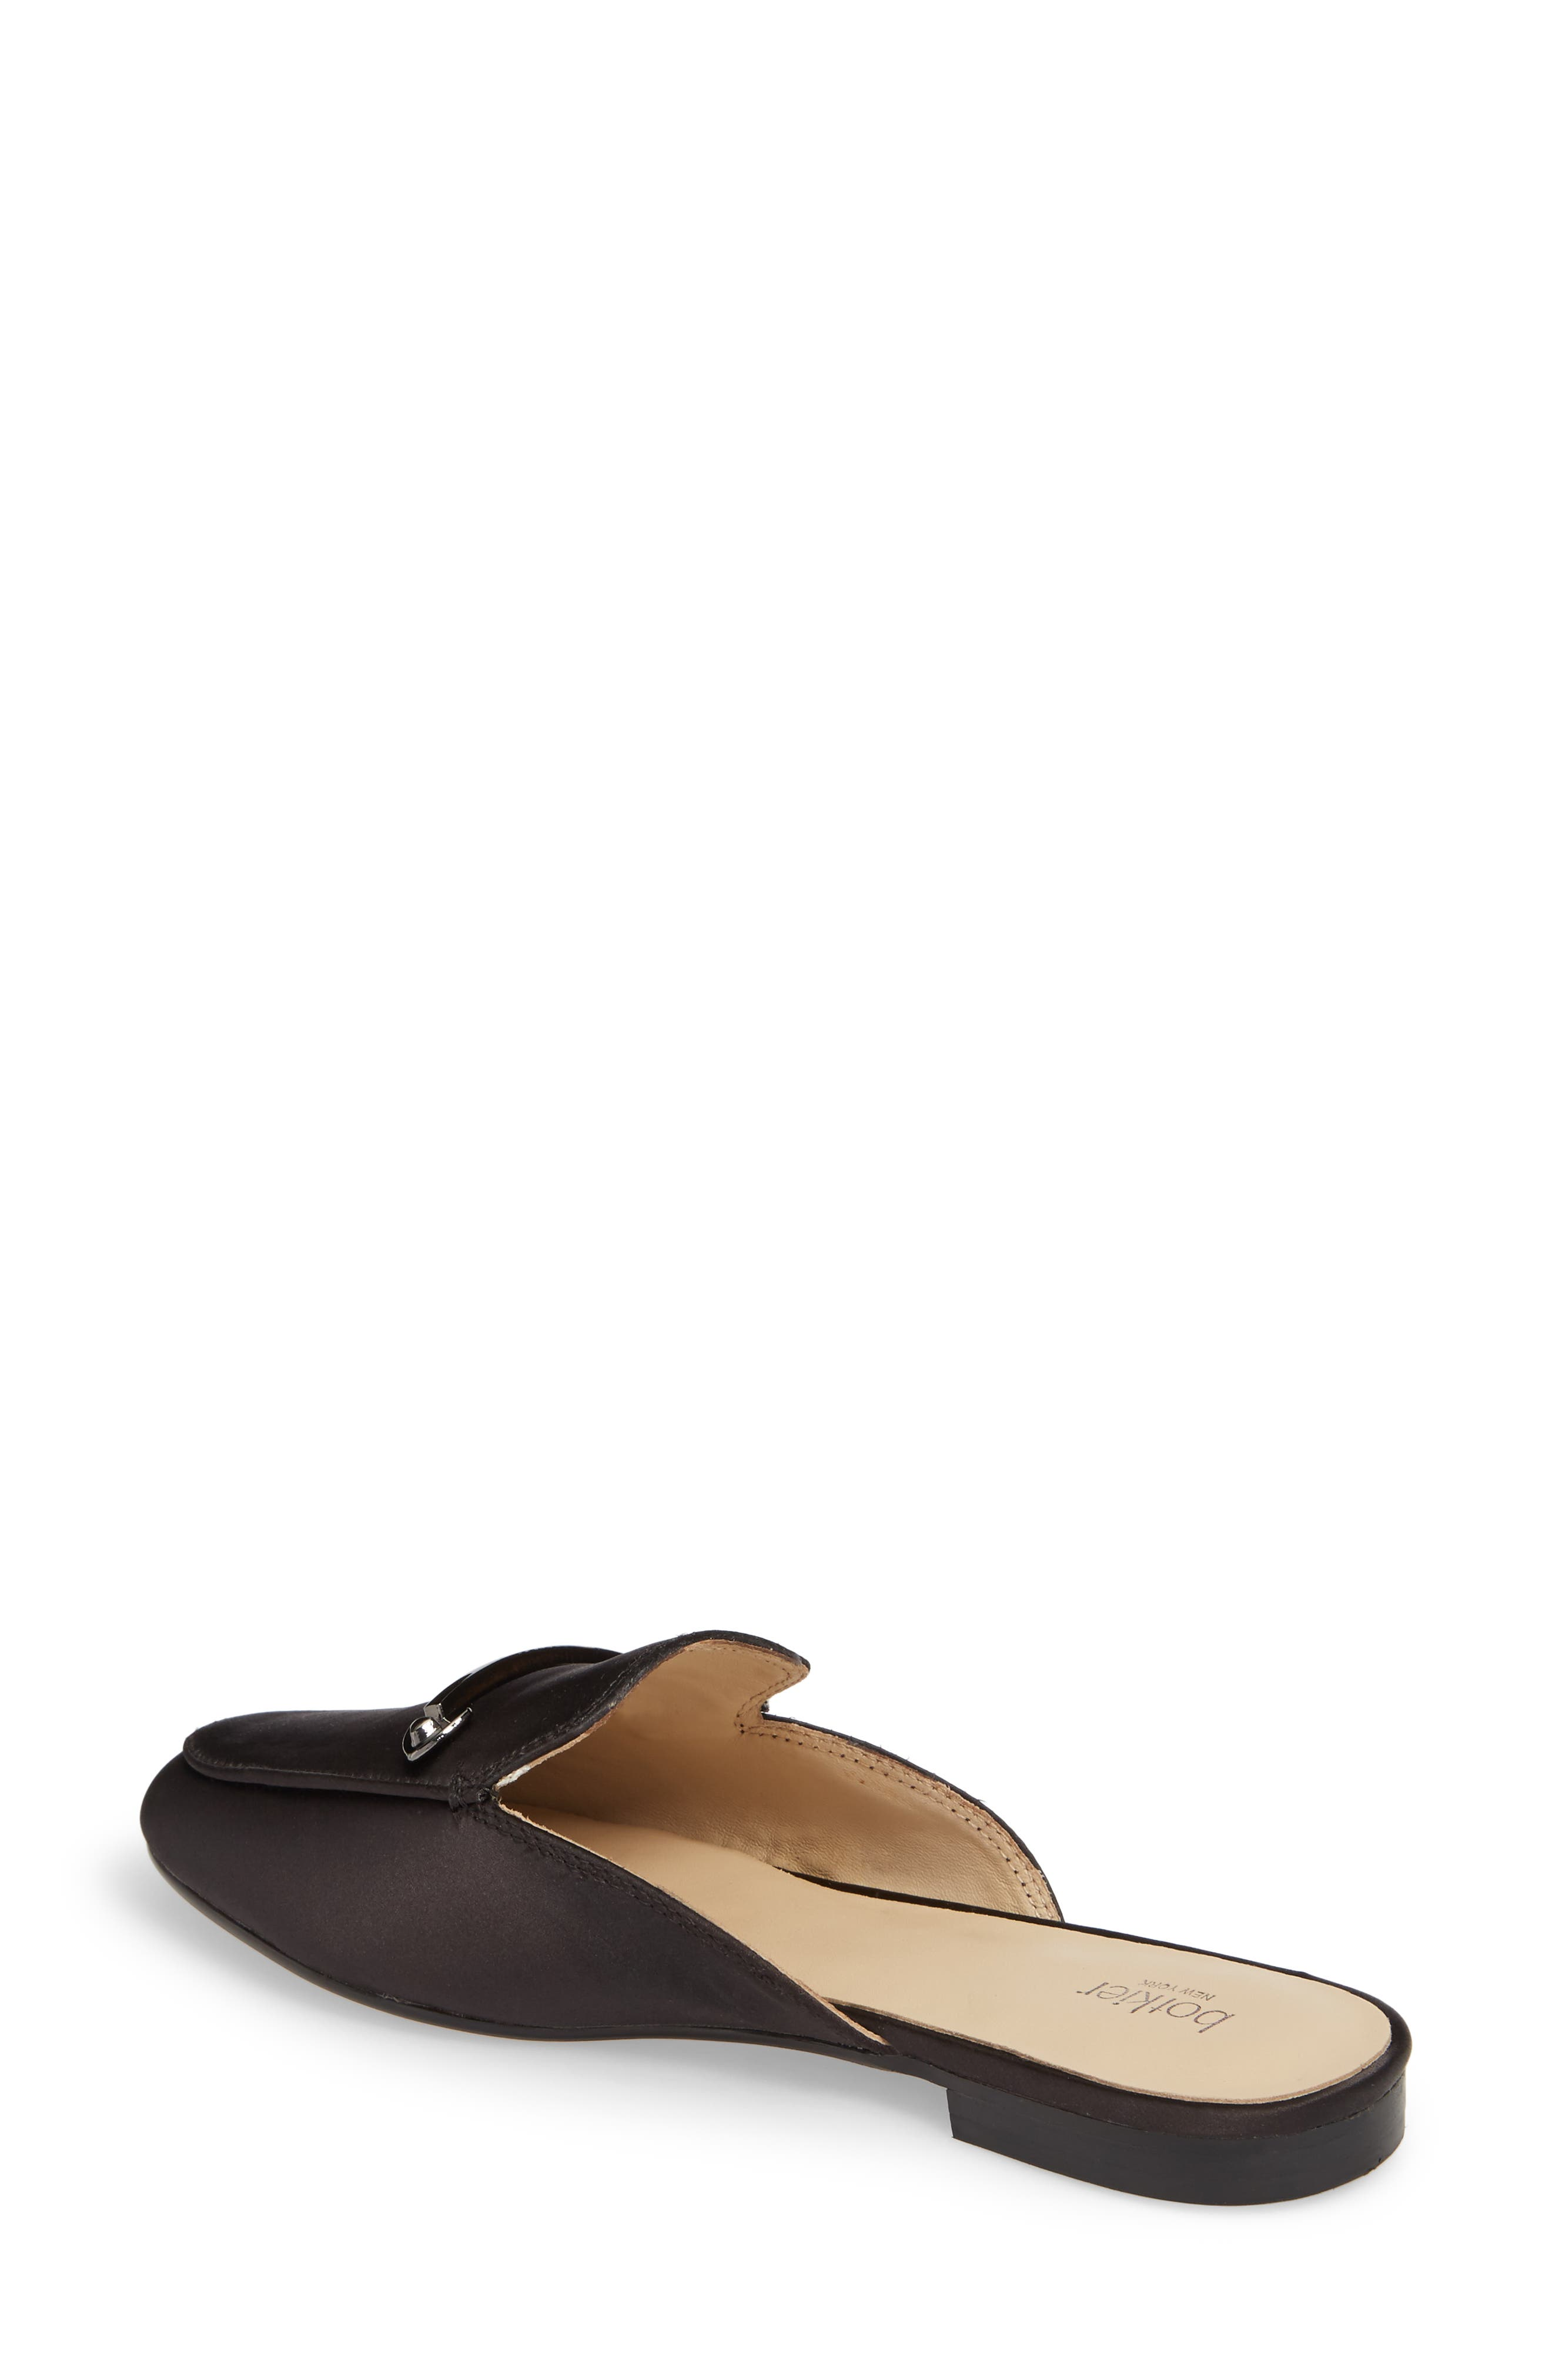 Clare Loafer Mule,                             Alternate thumbnail 2, color,                             003